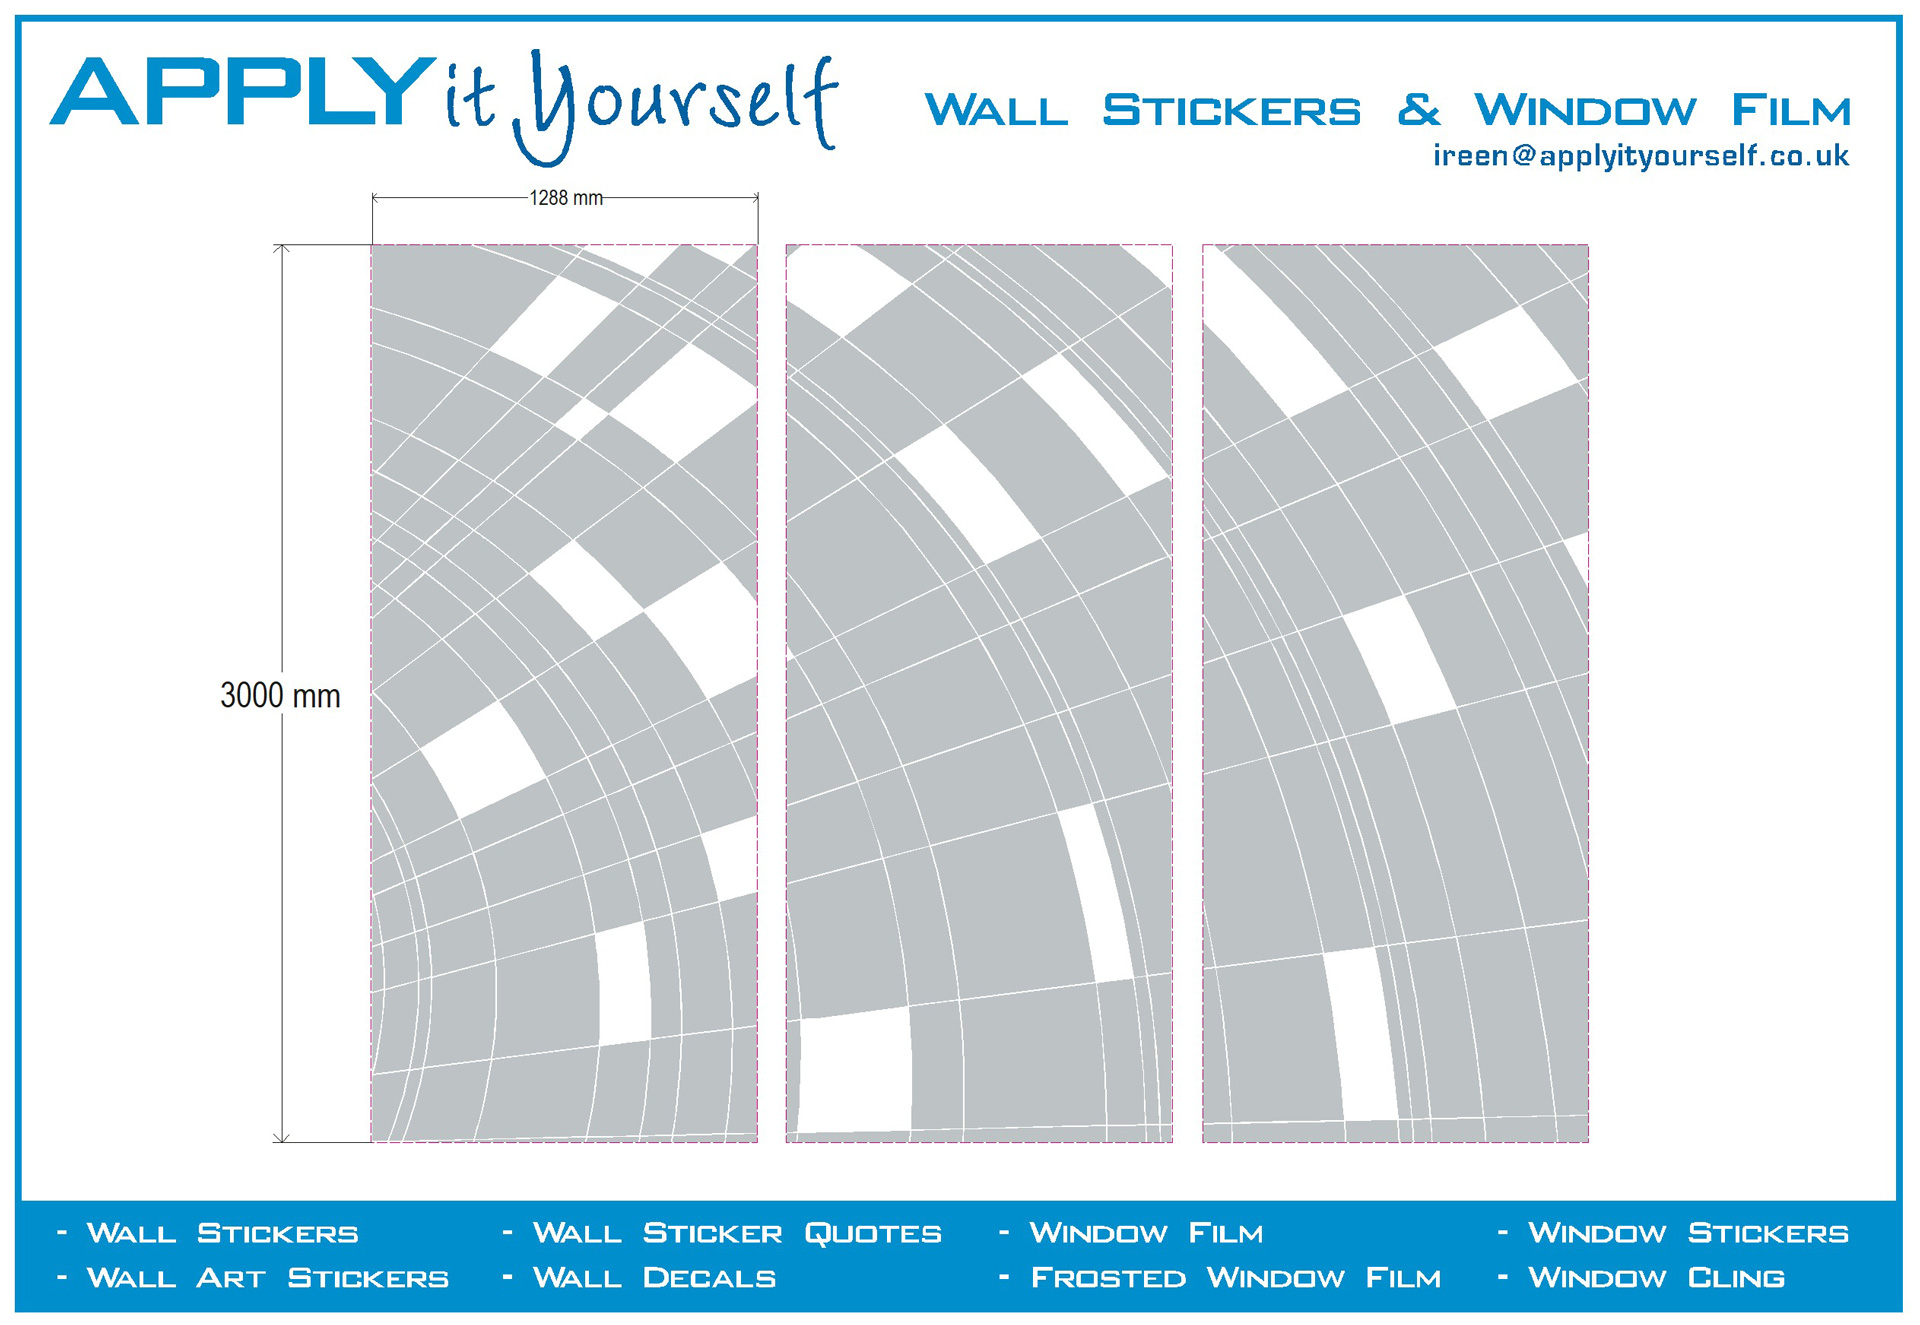 Instructions applyityourself frosted window film custom cut abstract pattern glass wall amipublicfo Image collections